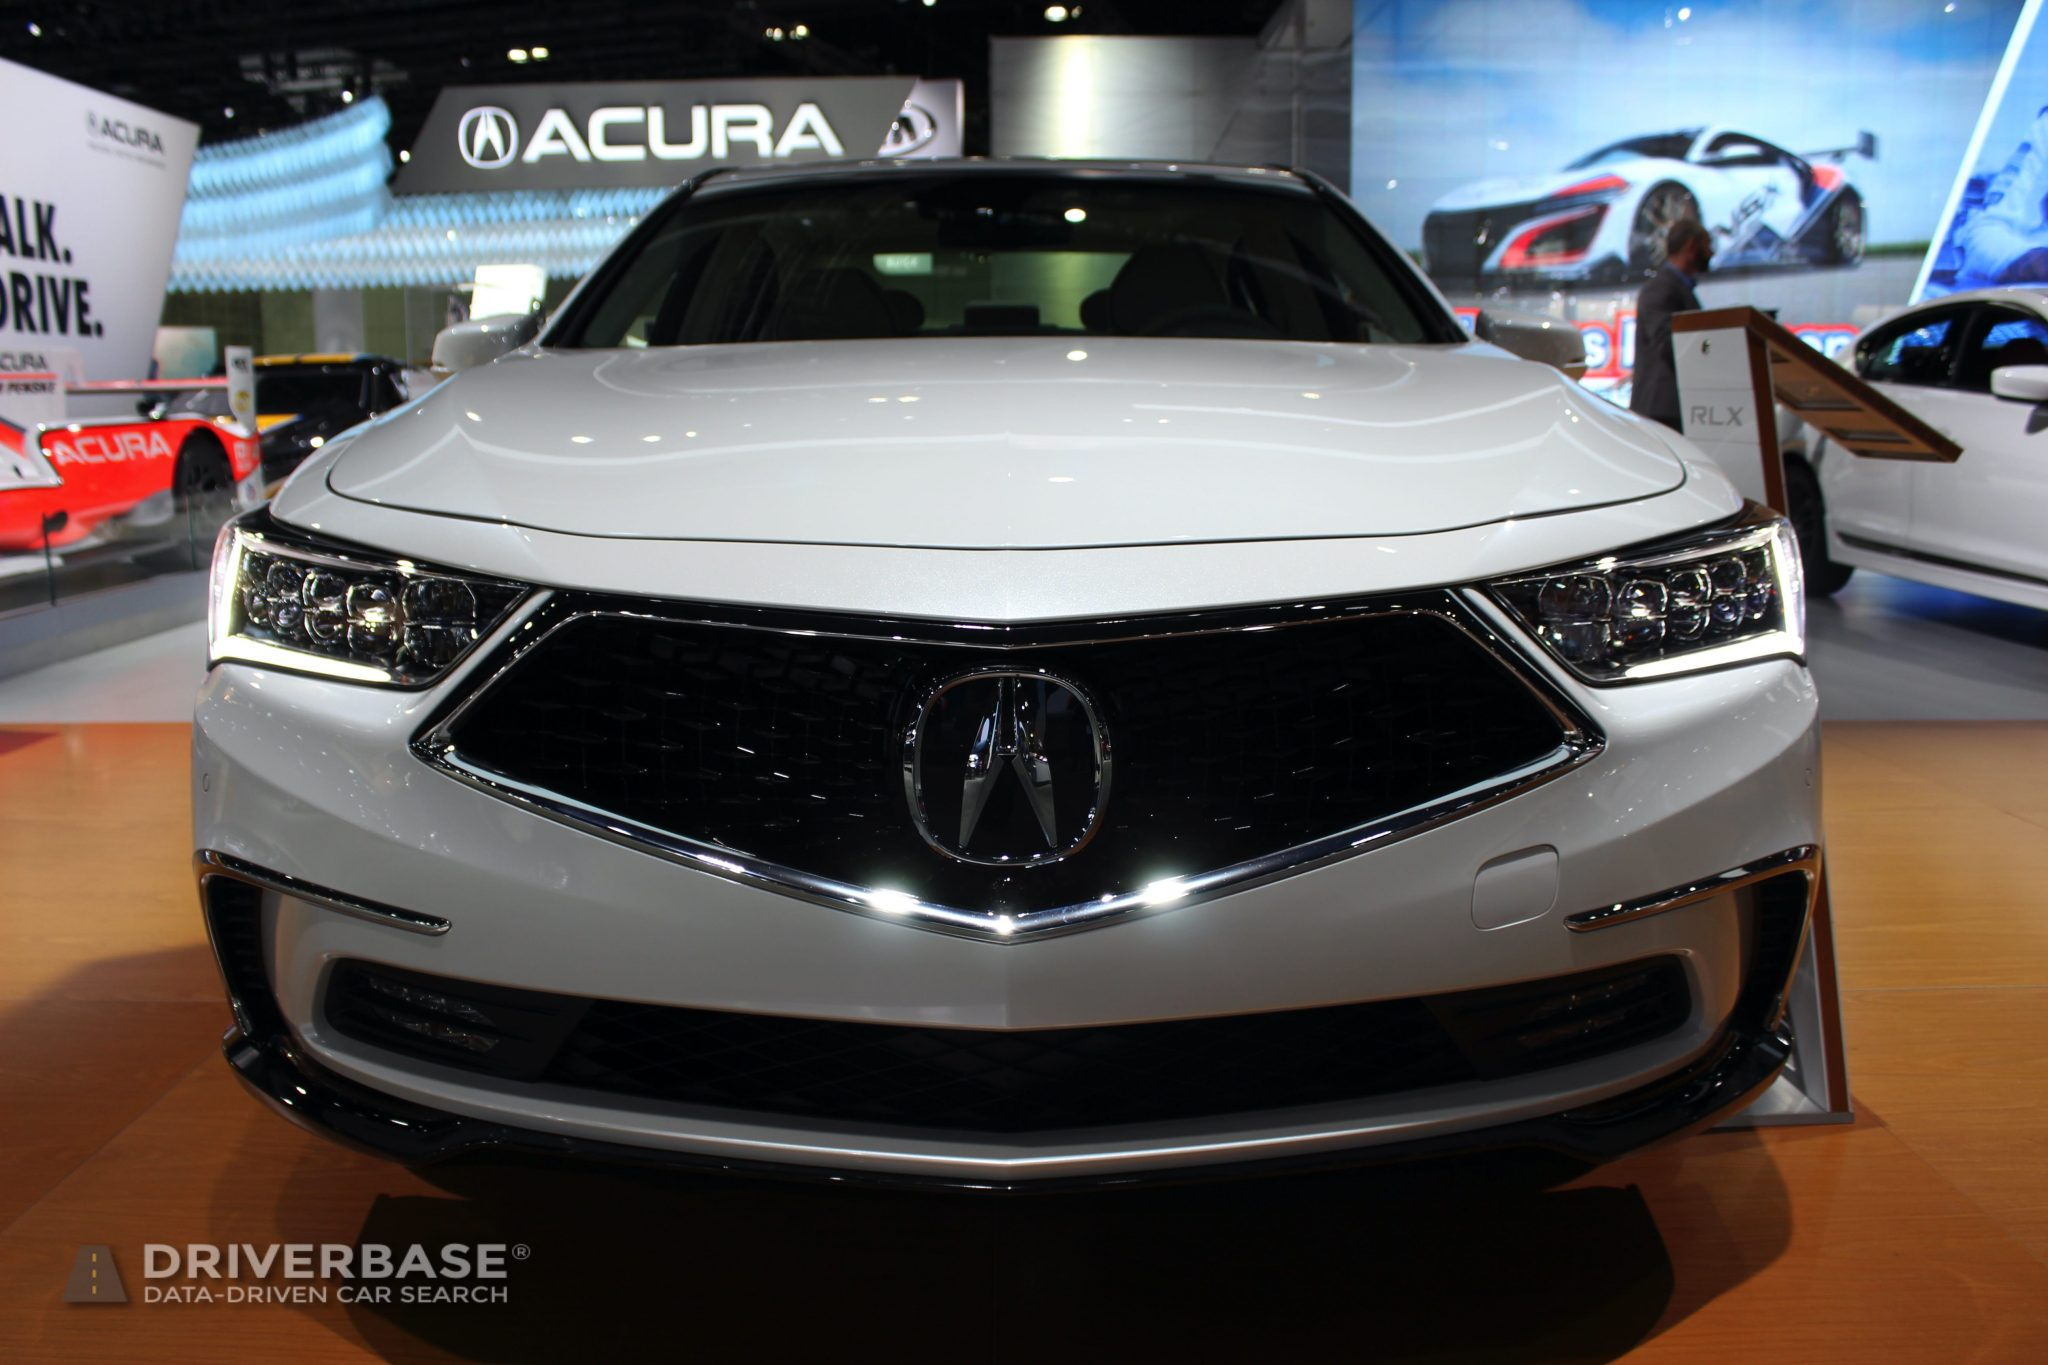 2020 Acura RLX SH AWD at the 2019 Los Angeles Auto Show